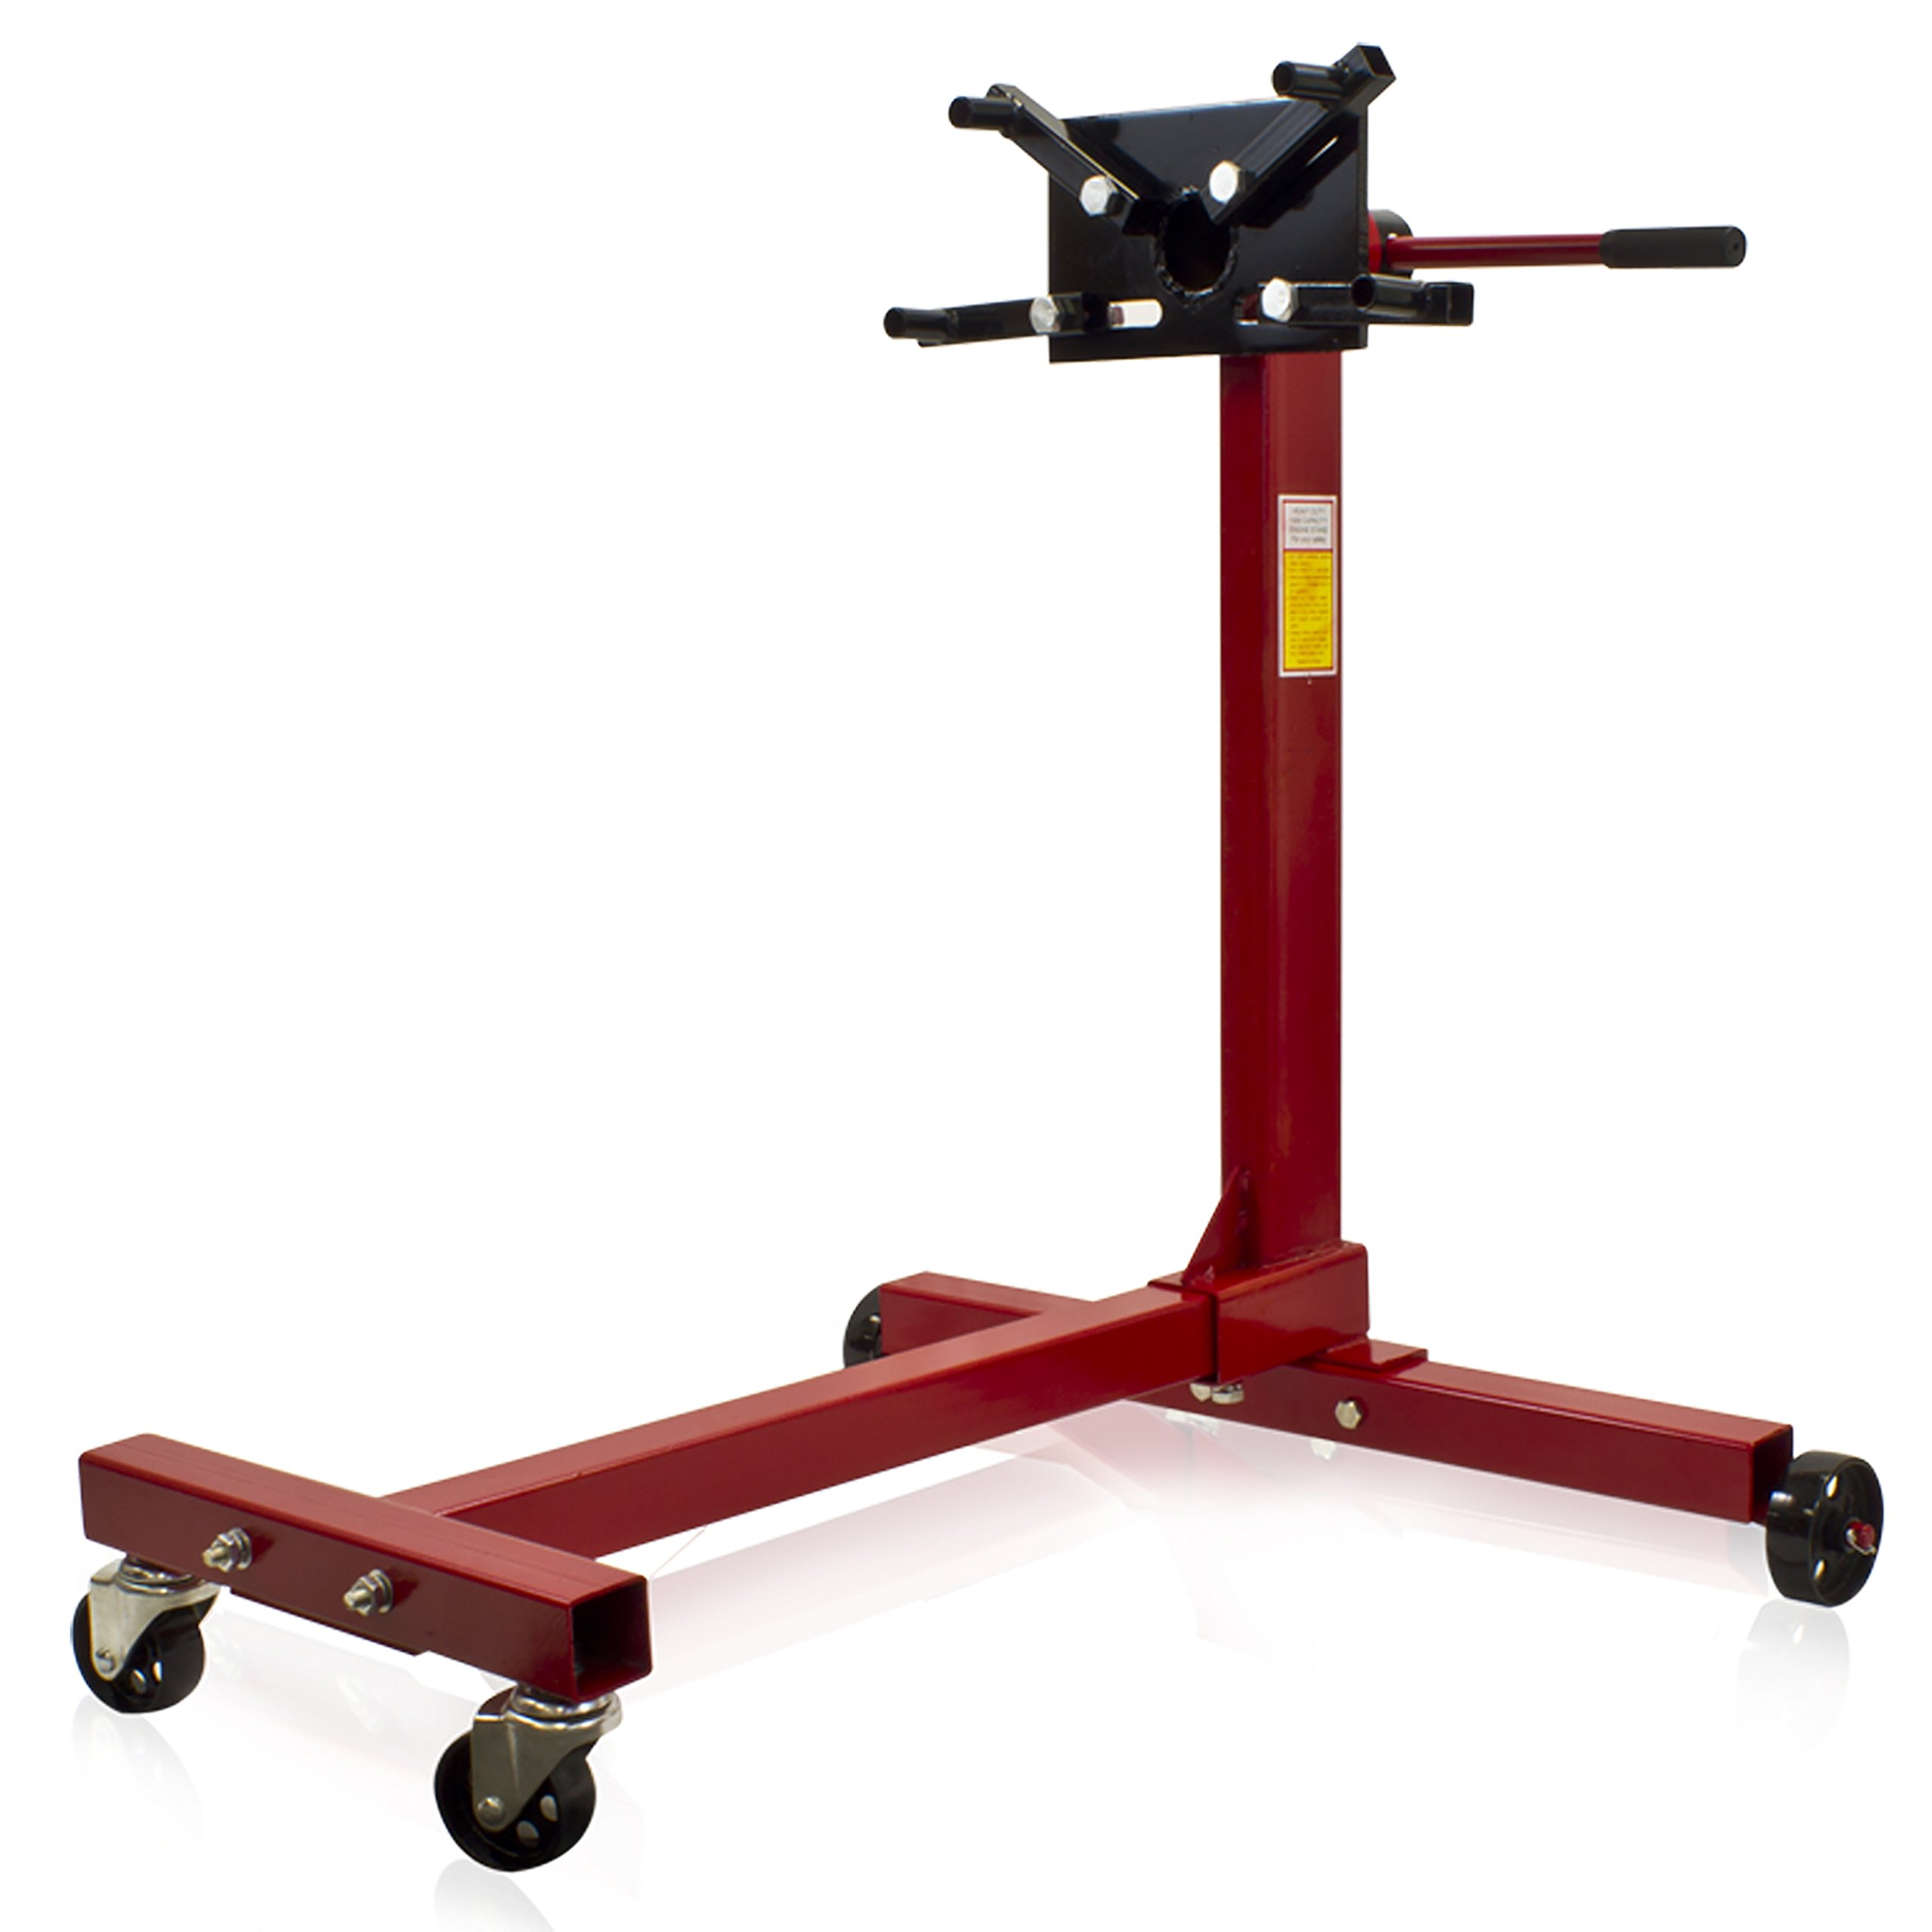 Best Choice Products SKY359 Engine 1000 lb. Pro Stand Hoist Lift Automotive Tools Shop Equipment New by Best Choice Products